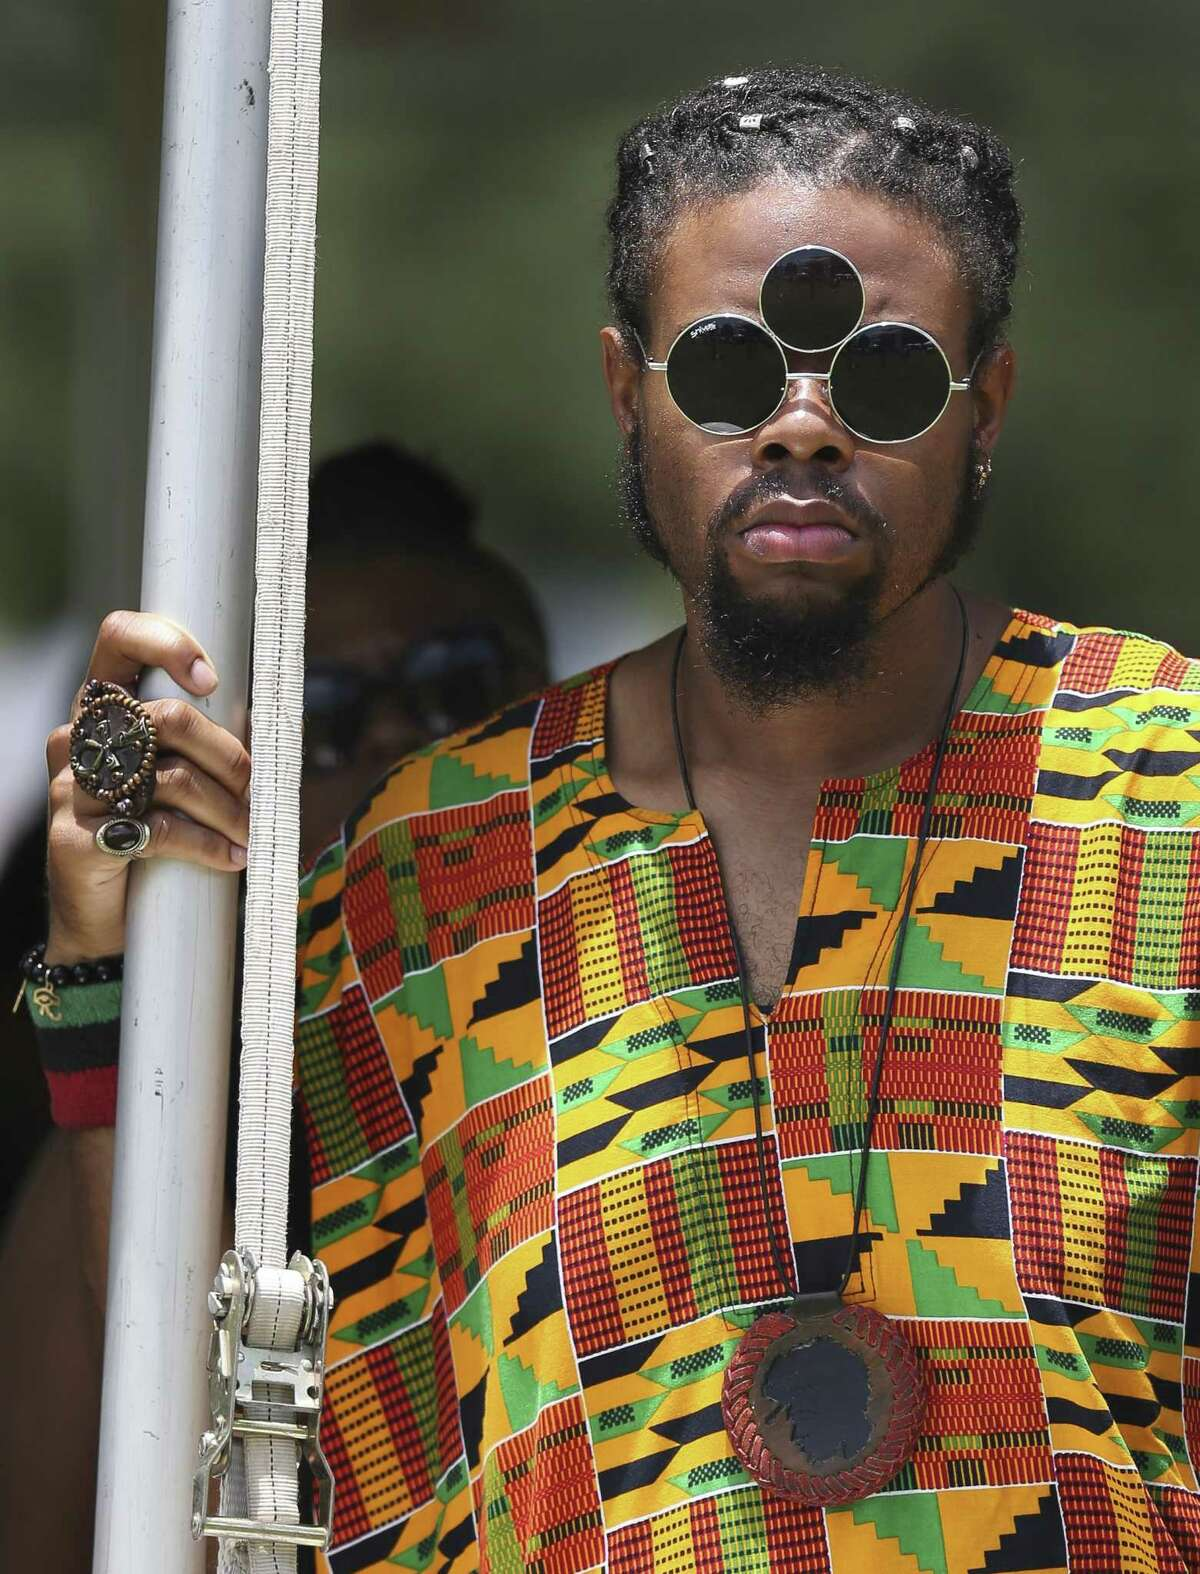 Darryal Smith, of Louisiana, watches a live performance at the 147th annual Juneteenth Celebration at Emancipation Park on Saturday, June 15, 2019, in Houston.